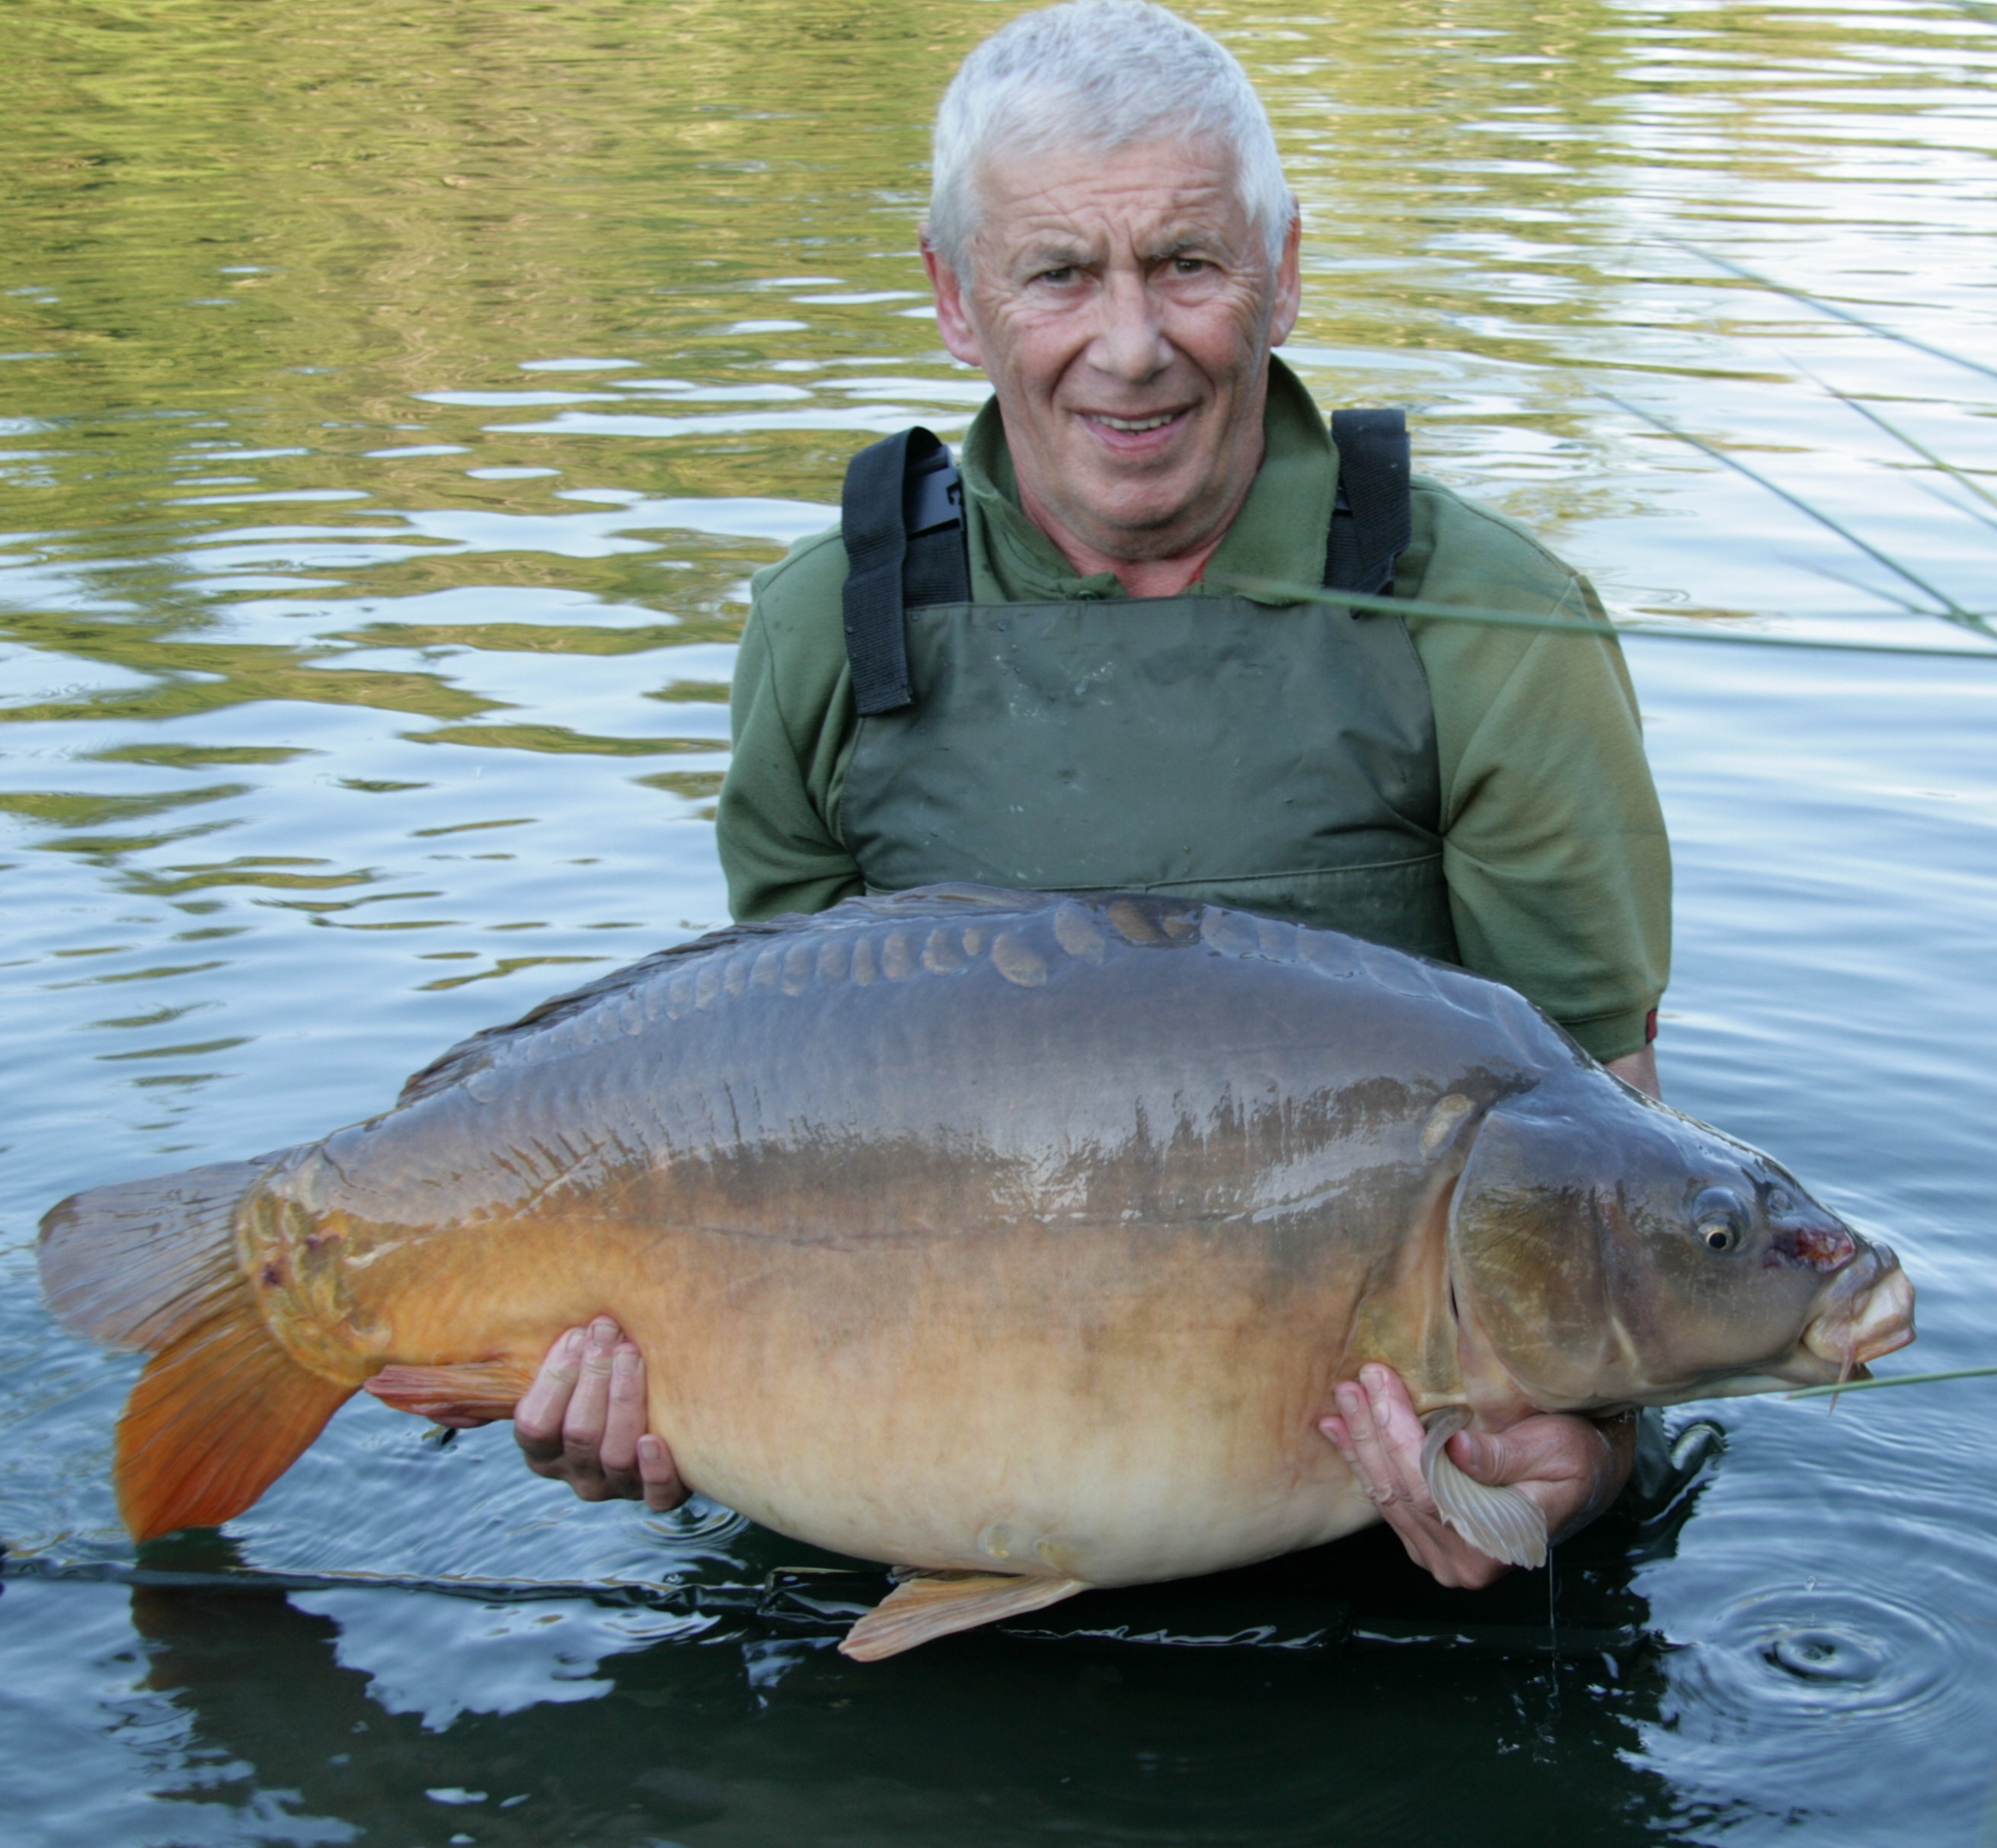 https://www.puyravaudcarp.com/wp-content/uploads/2016/10/49.013.jpg